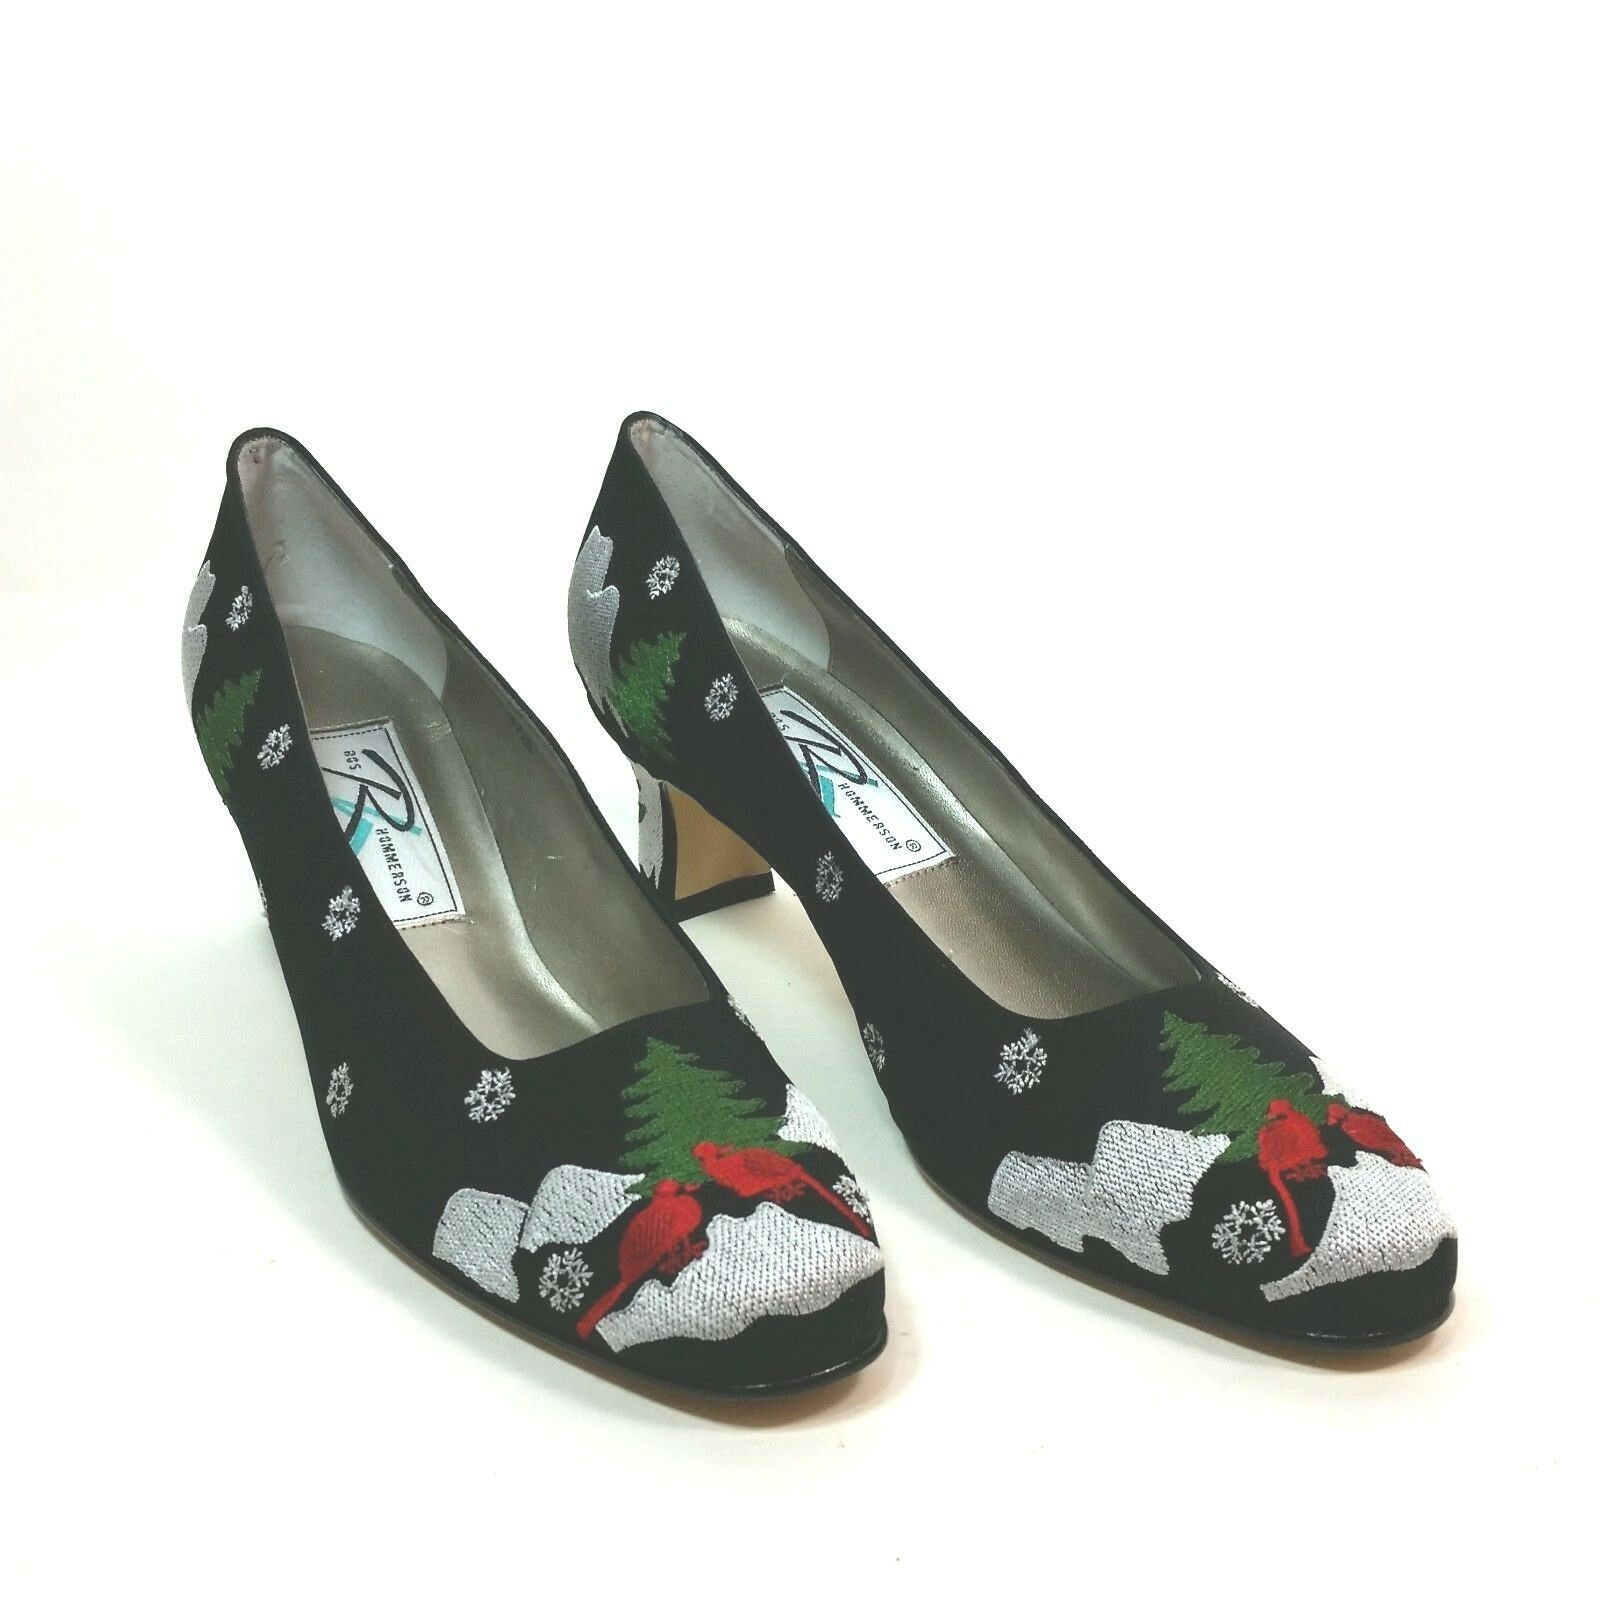 Ros Hommerson Womens 9.5 S Holiday Party Pumps Heels Ugly Ugly Ugly Tacky Christmas shoes 45b8dc